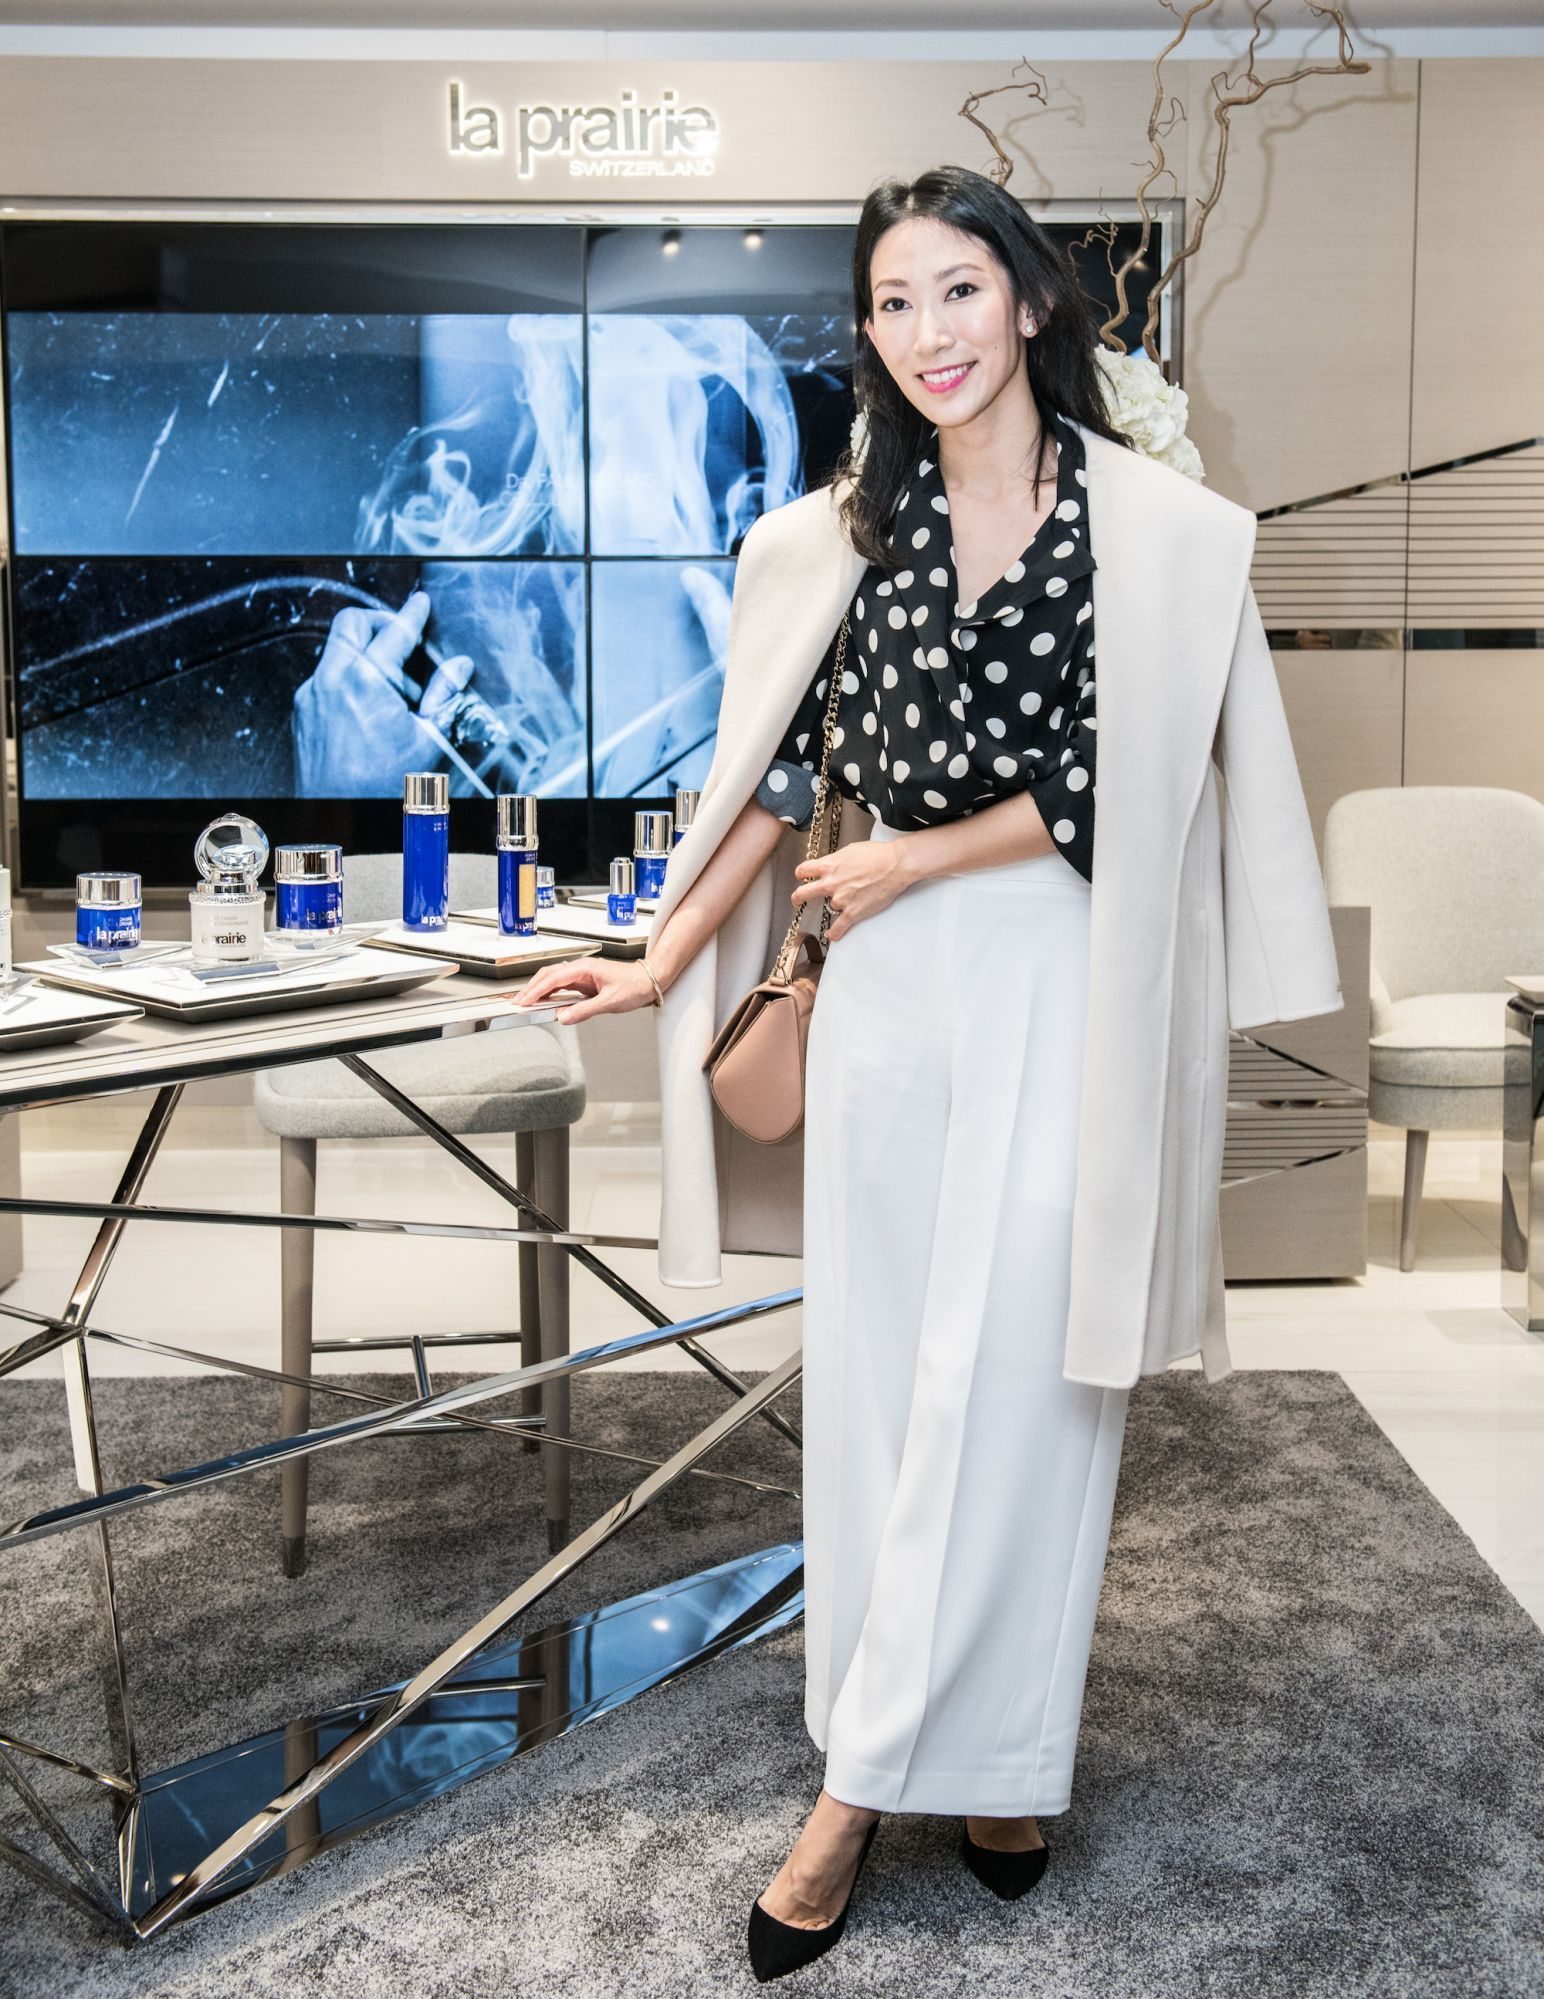 Video: VIP Guests At La Prairie's Art Basel Pavilion Lounge